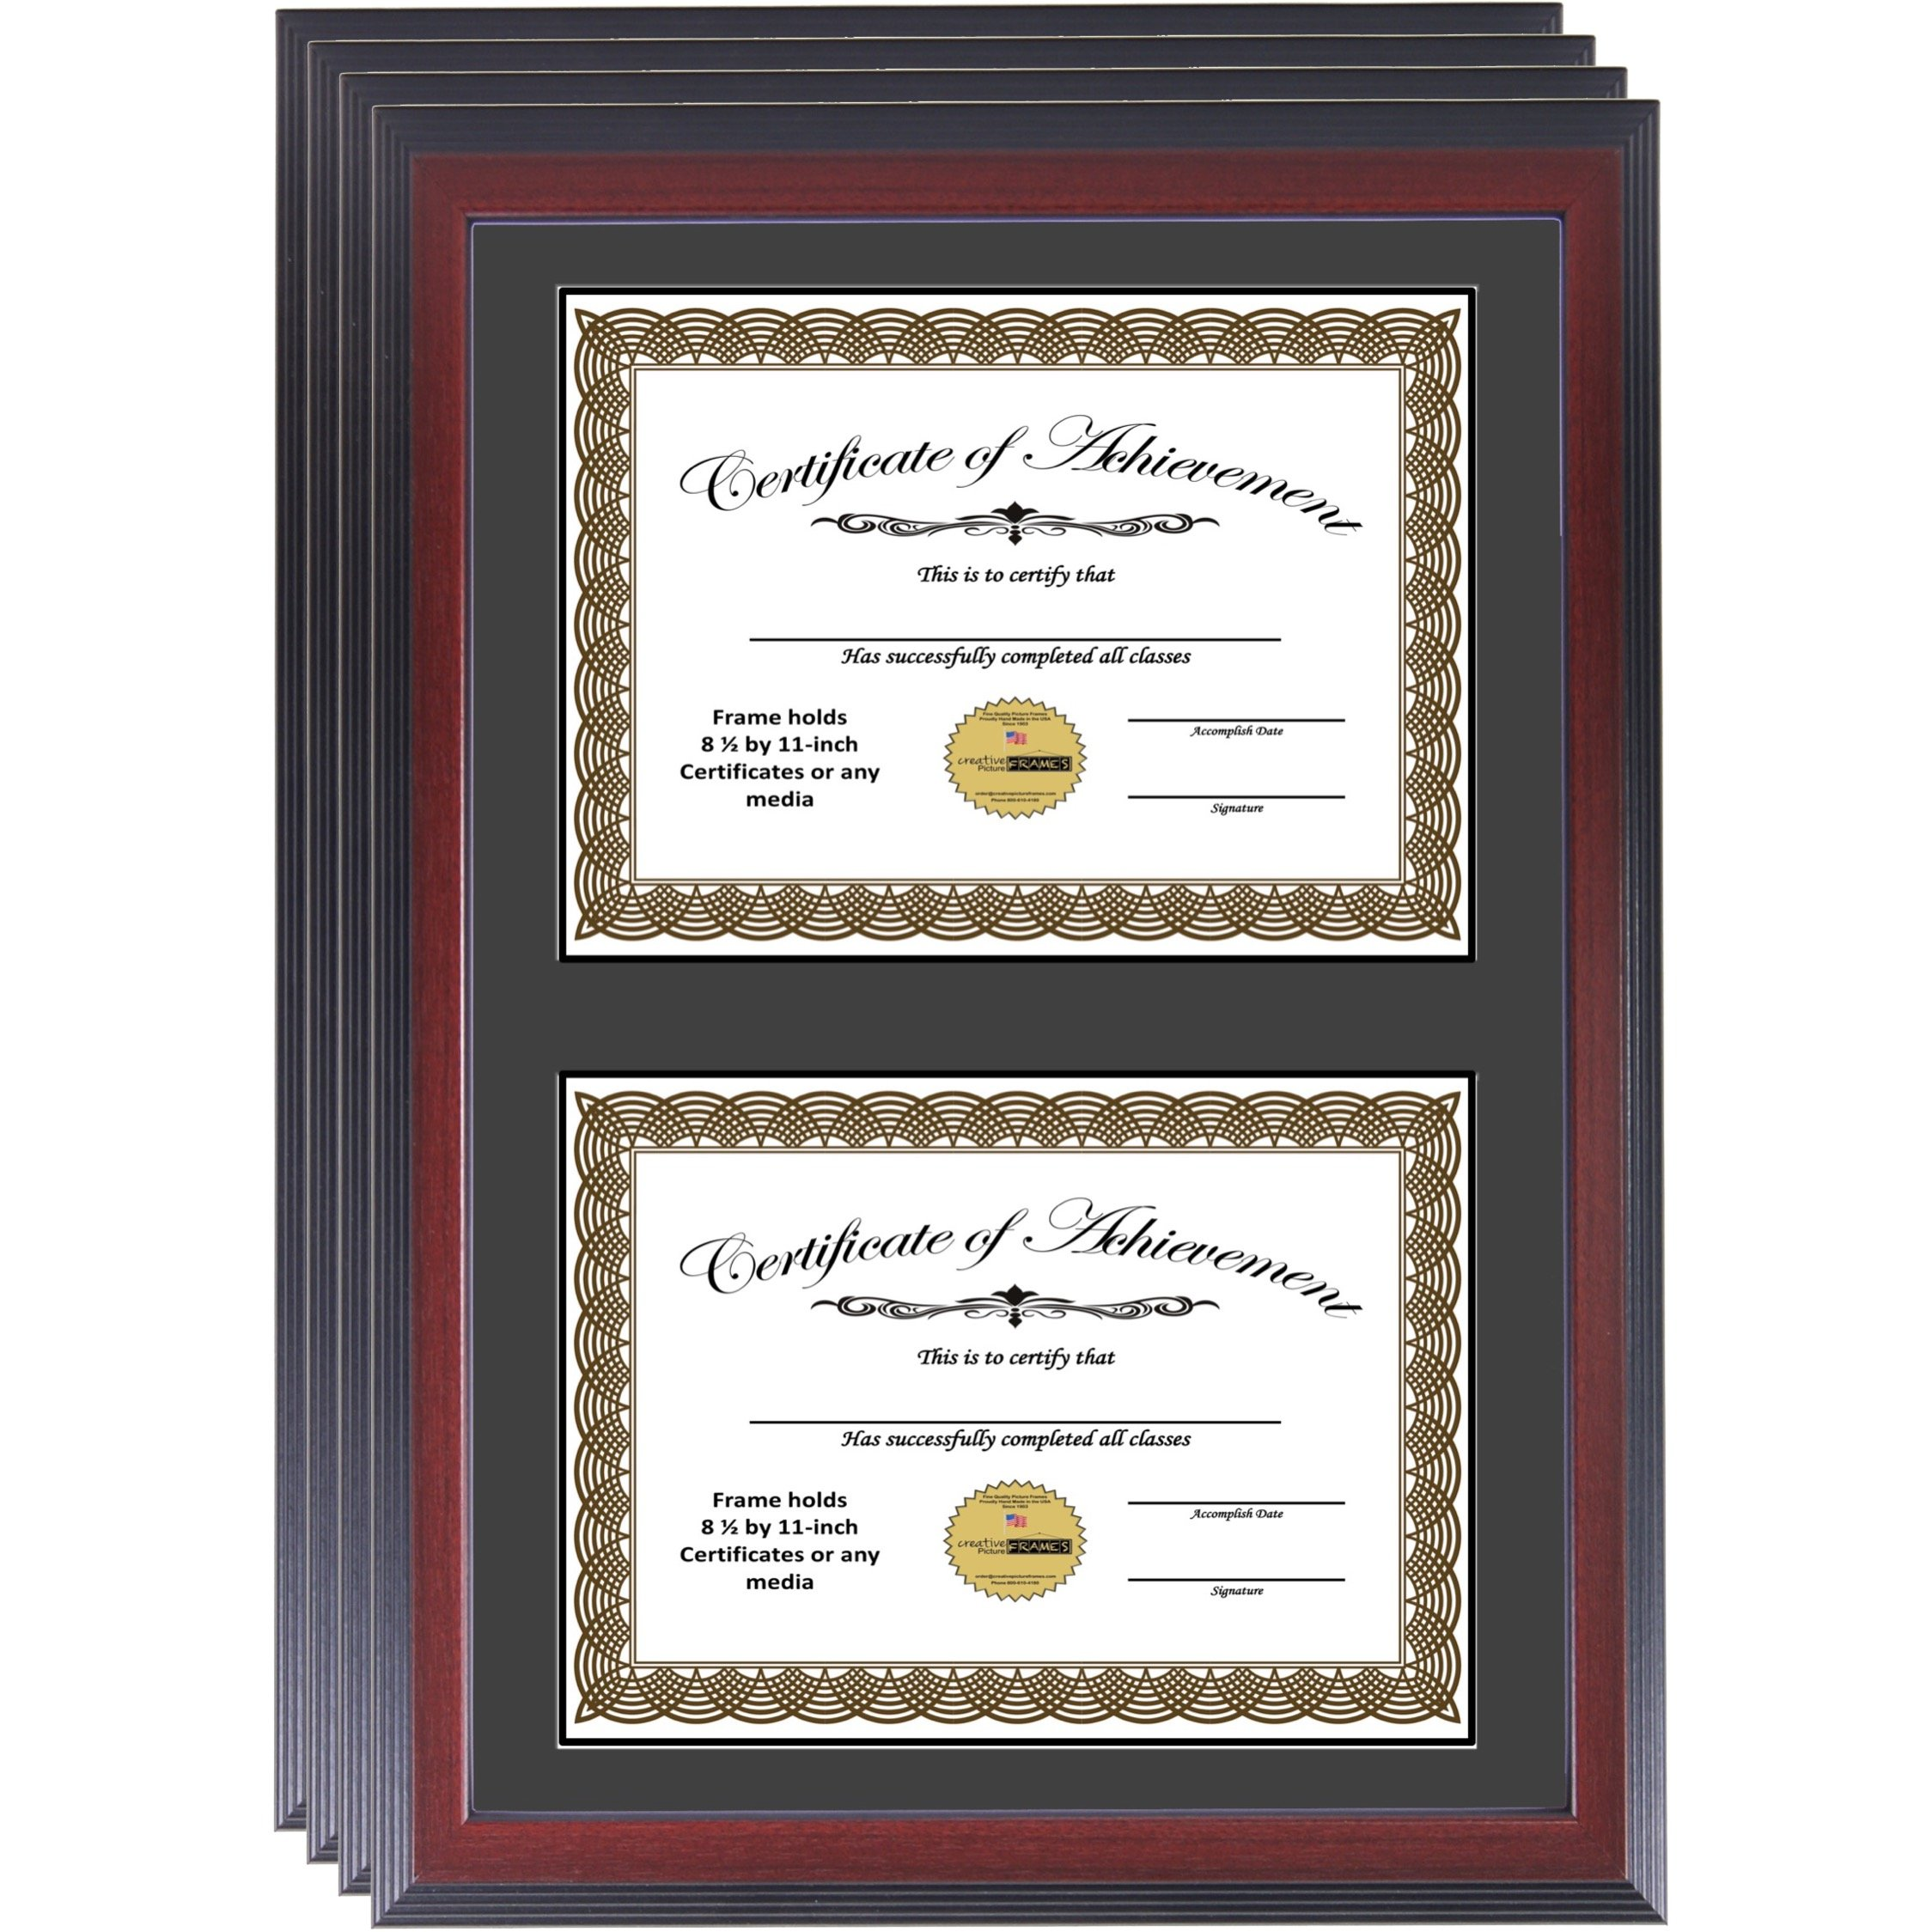 CreativePF [14x20mh-b] Mahogany Finish Double Diploma Frame with Black Mat, Holds Two 8.5 by 11-inch Documents with Wall Hanger (4-Pack) by Creative Picture Frames